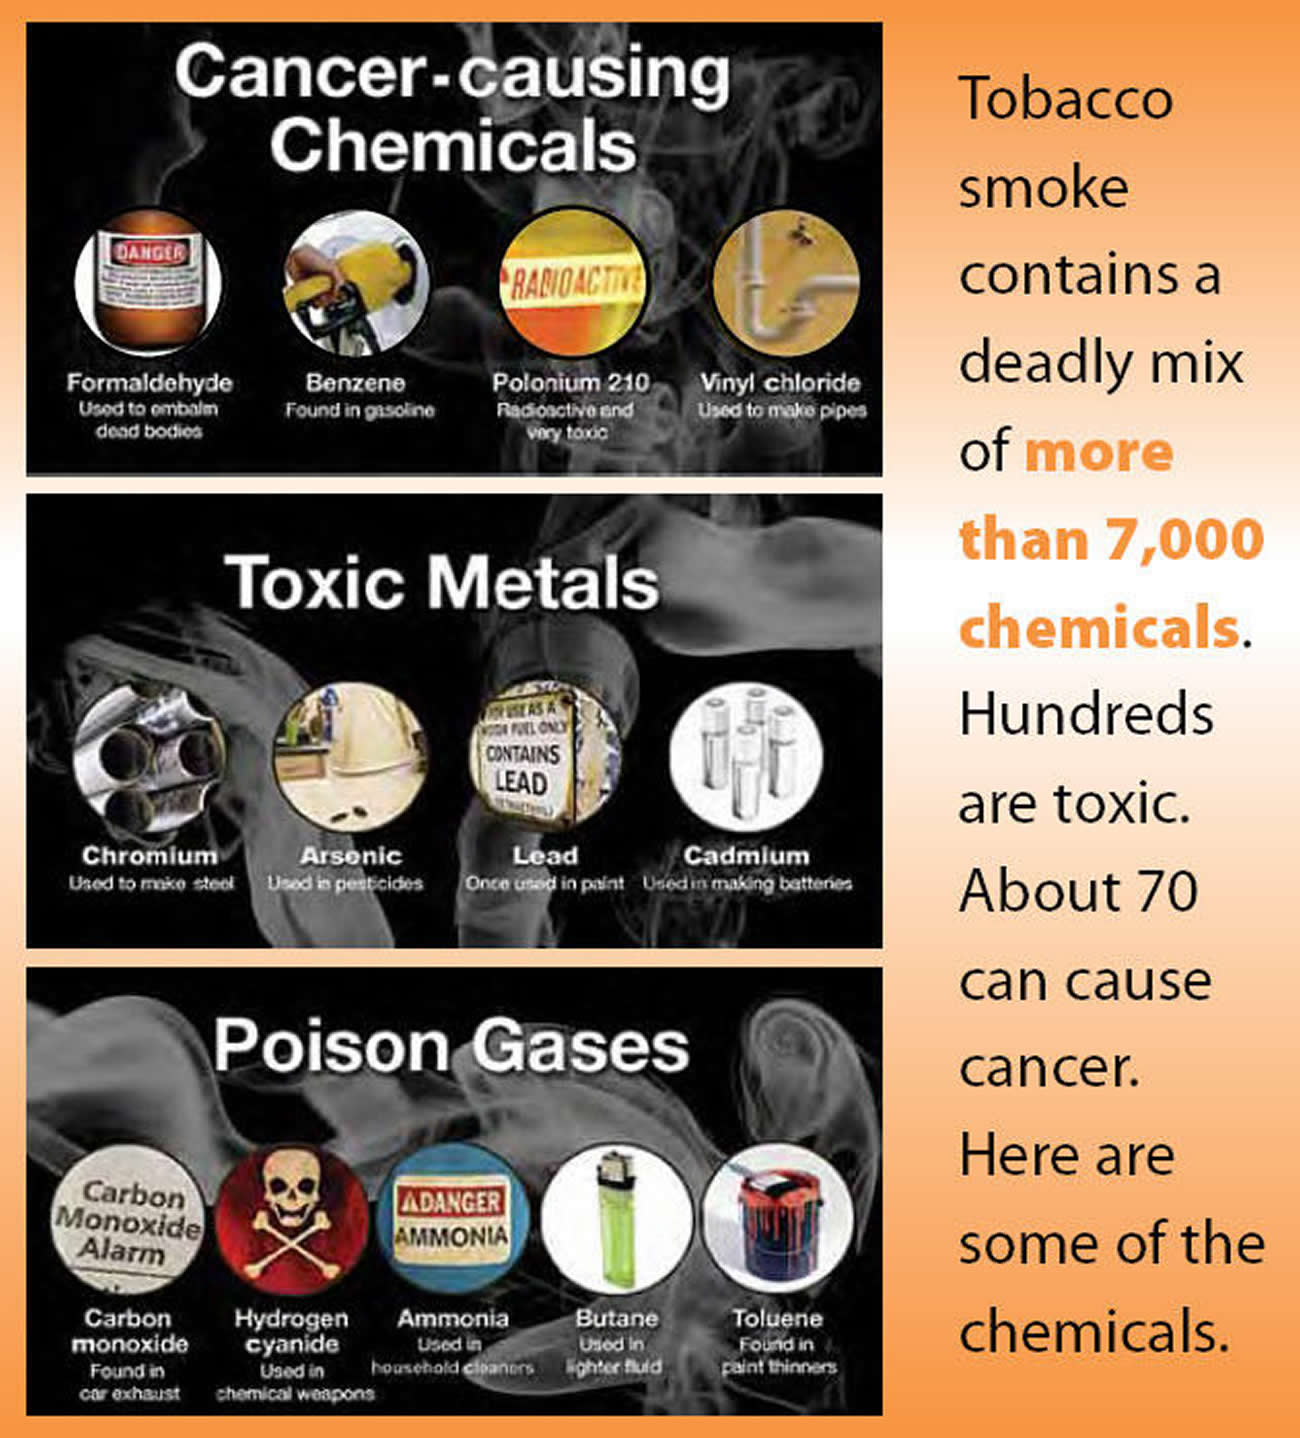 the hazardous ingredients in a tobacco cigarette Clove cigarettes may have less tobacco in each cigarette, but they should not be considered safe, by any means cloves also contain an active ingredient that traditional cigarettes don't contain - eugenol this is a phenylpropene that is a part of clove oil, and when used topically or internally, it can.